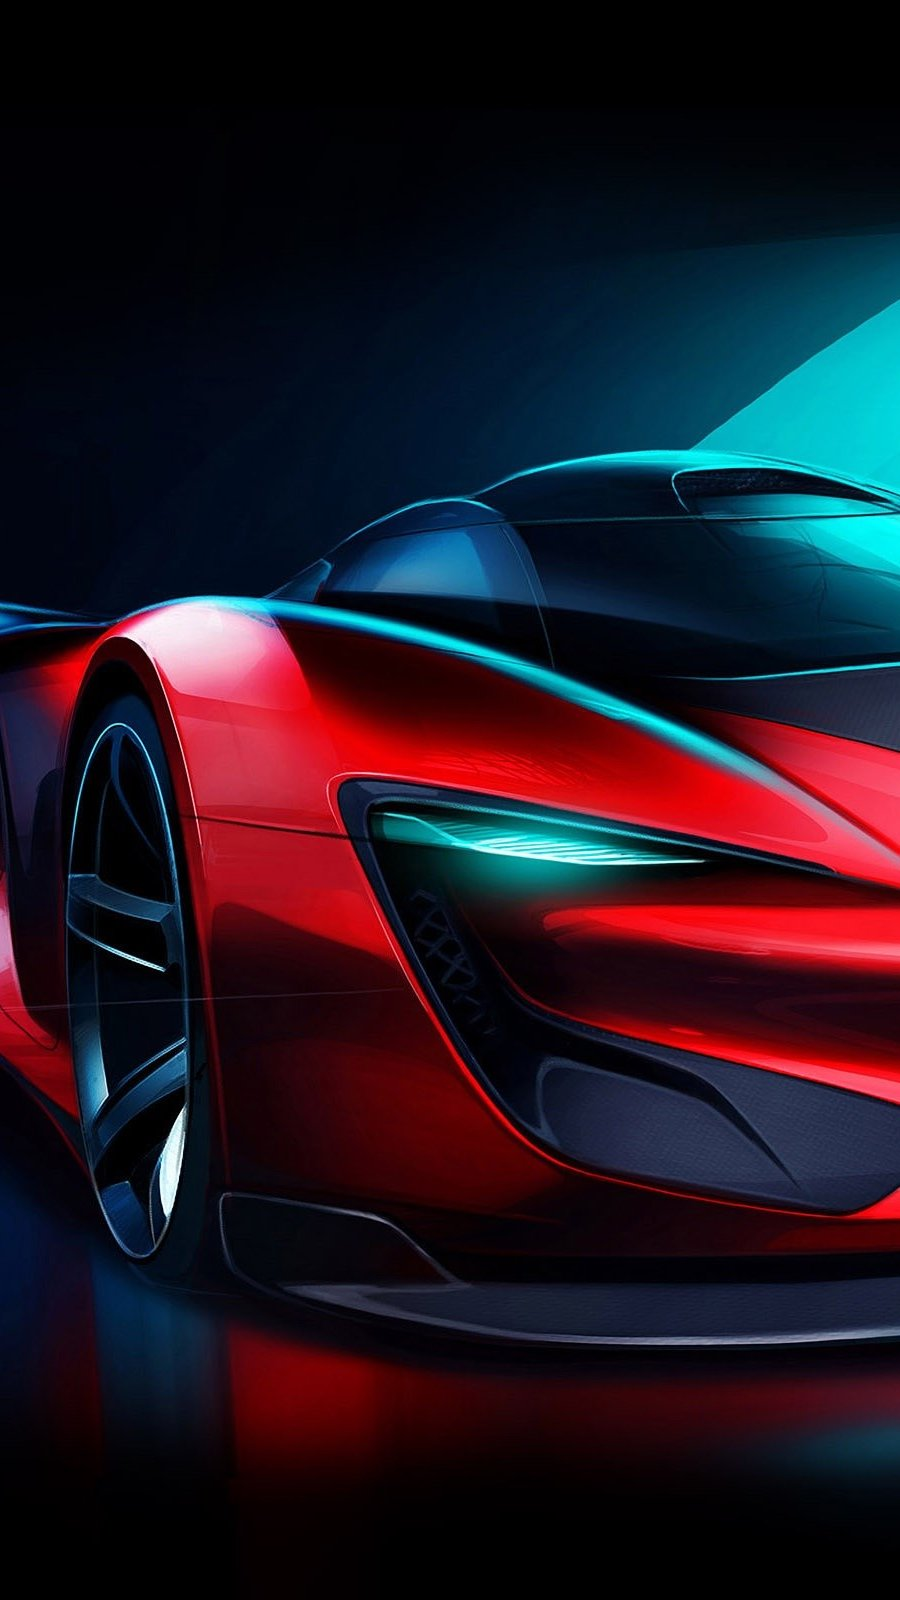 Wallpaper SRT Tomahawk Vision in Gran Turismo Vertical